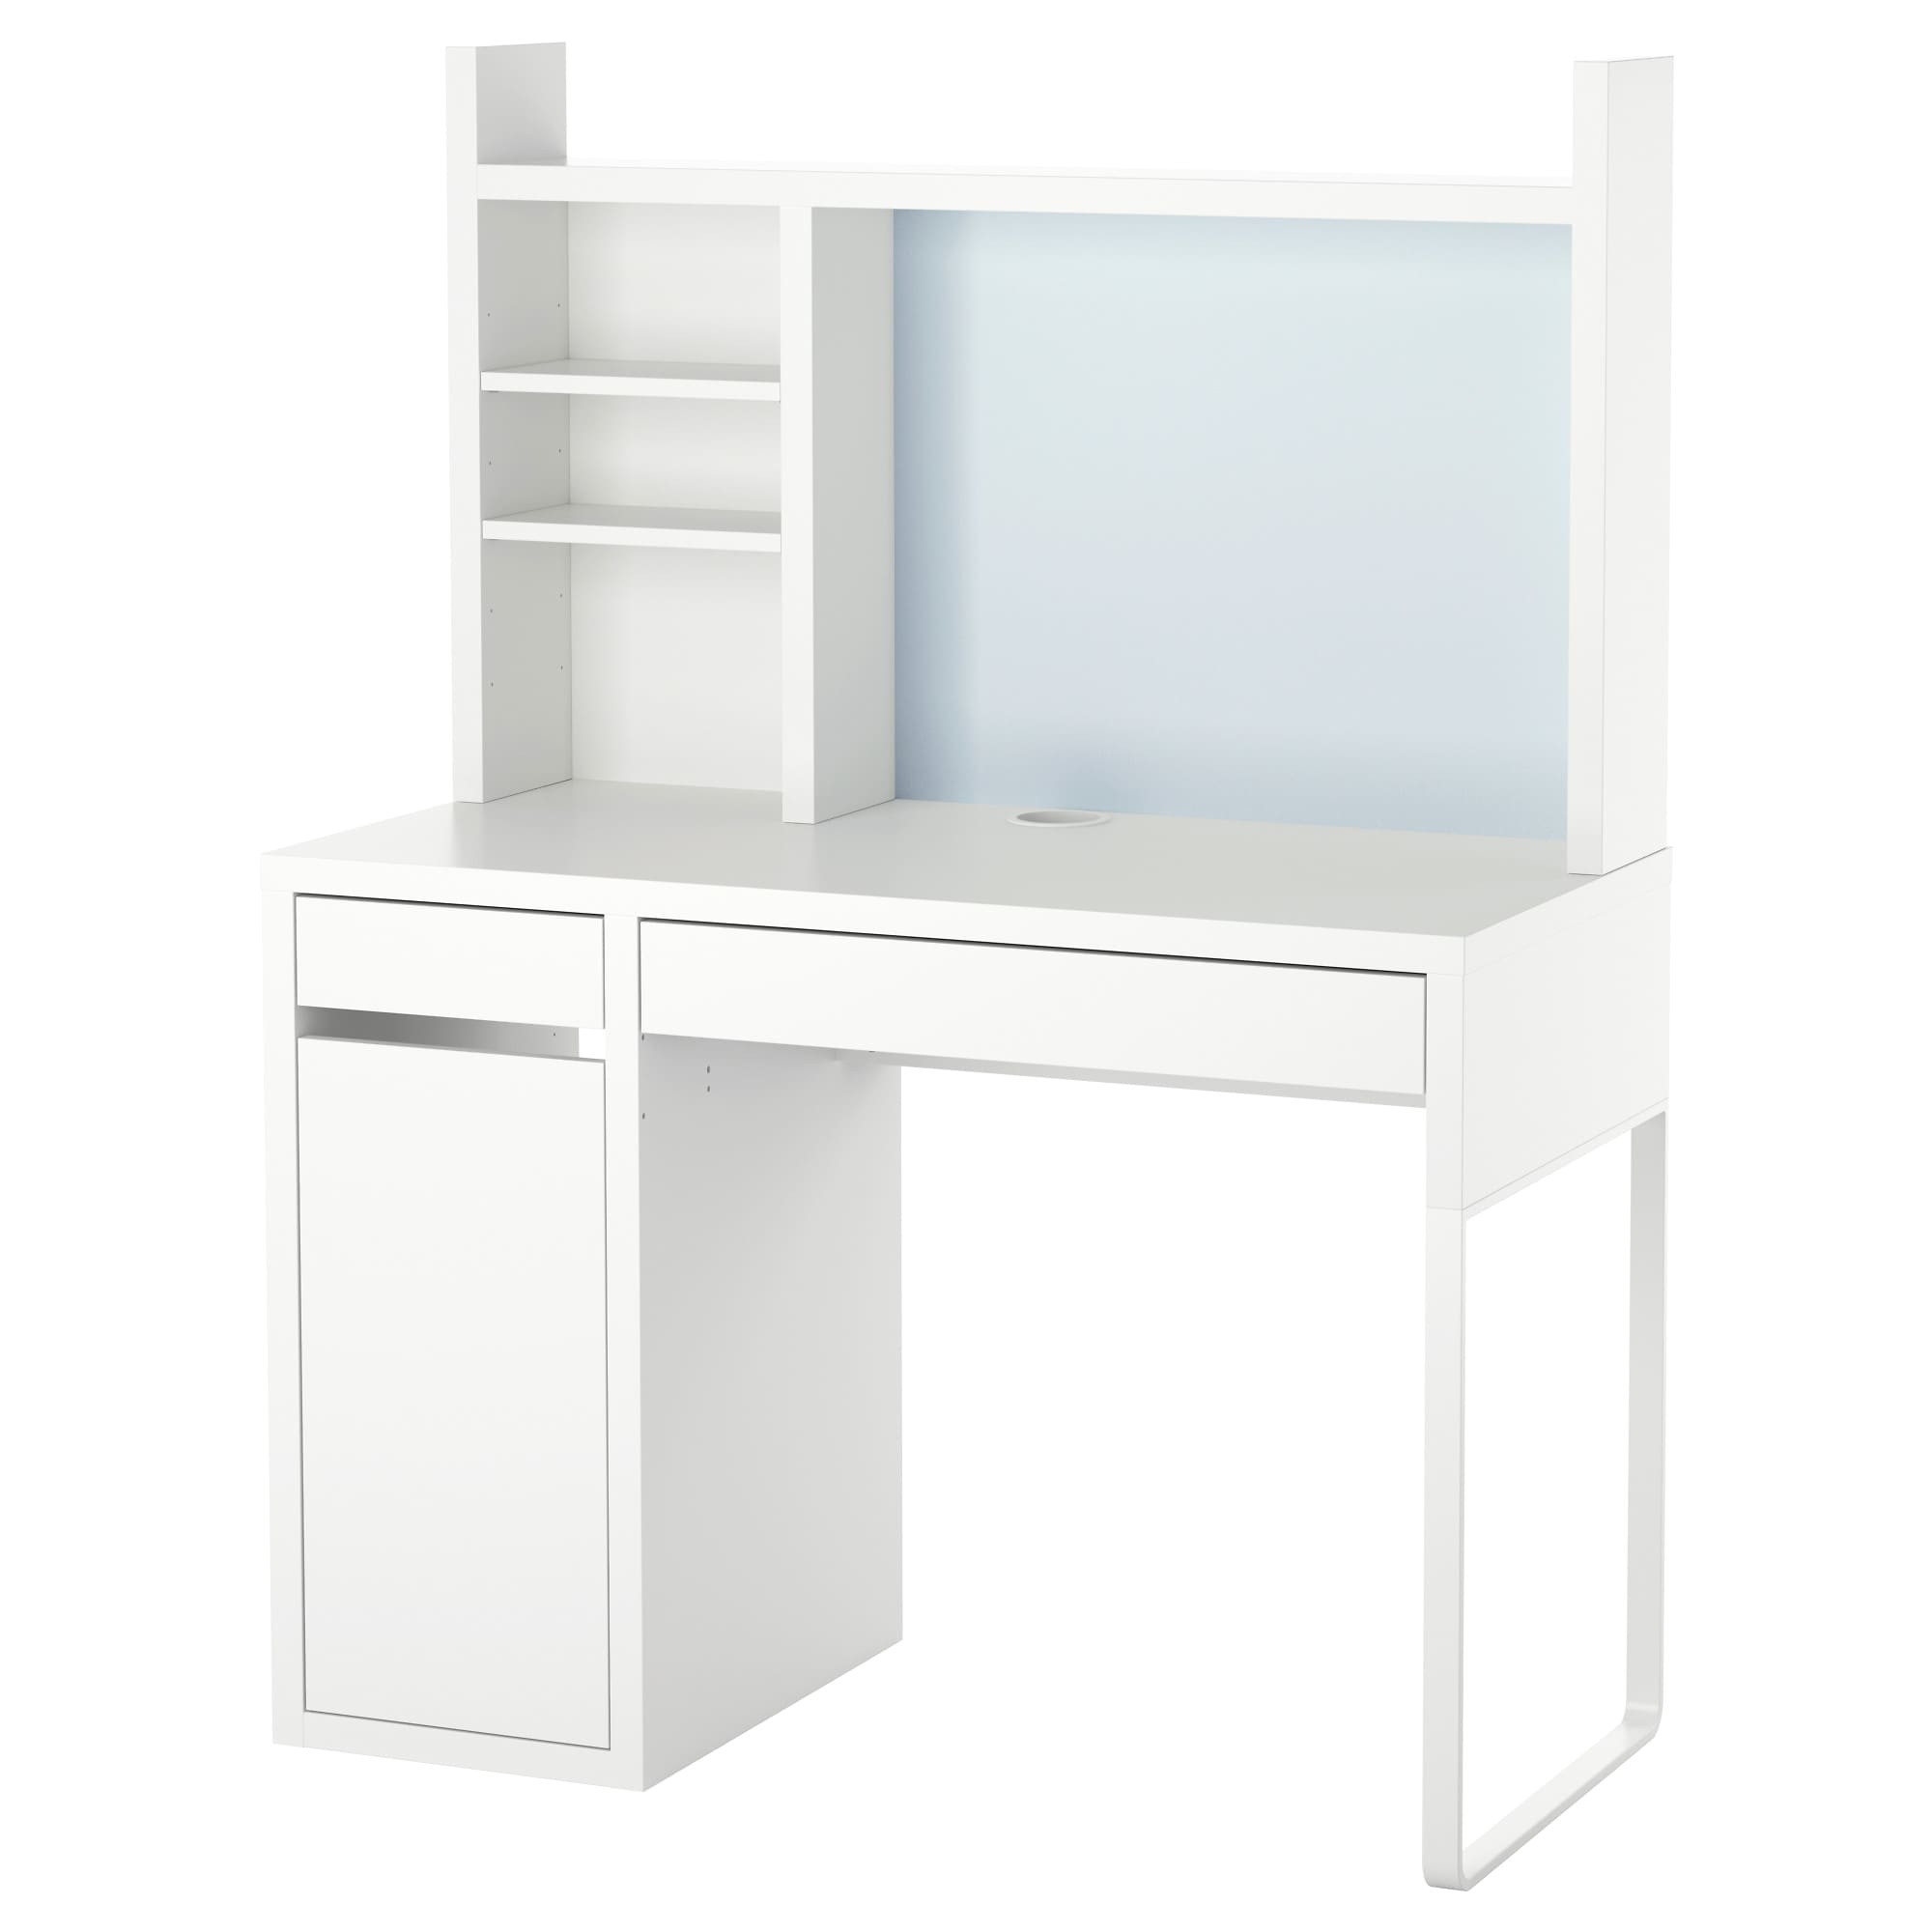 ikea micke workstation drawer stops prevent the drawers from being pulled out too far